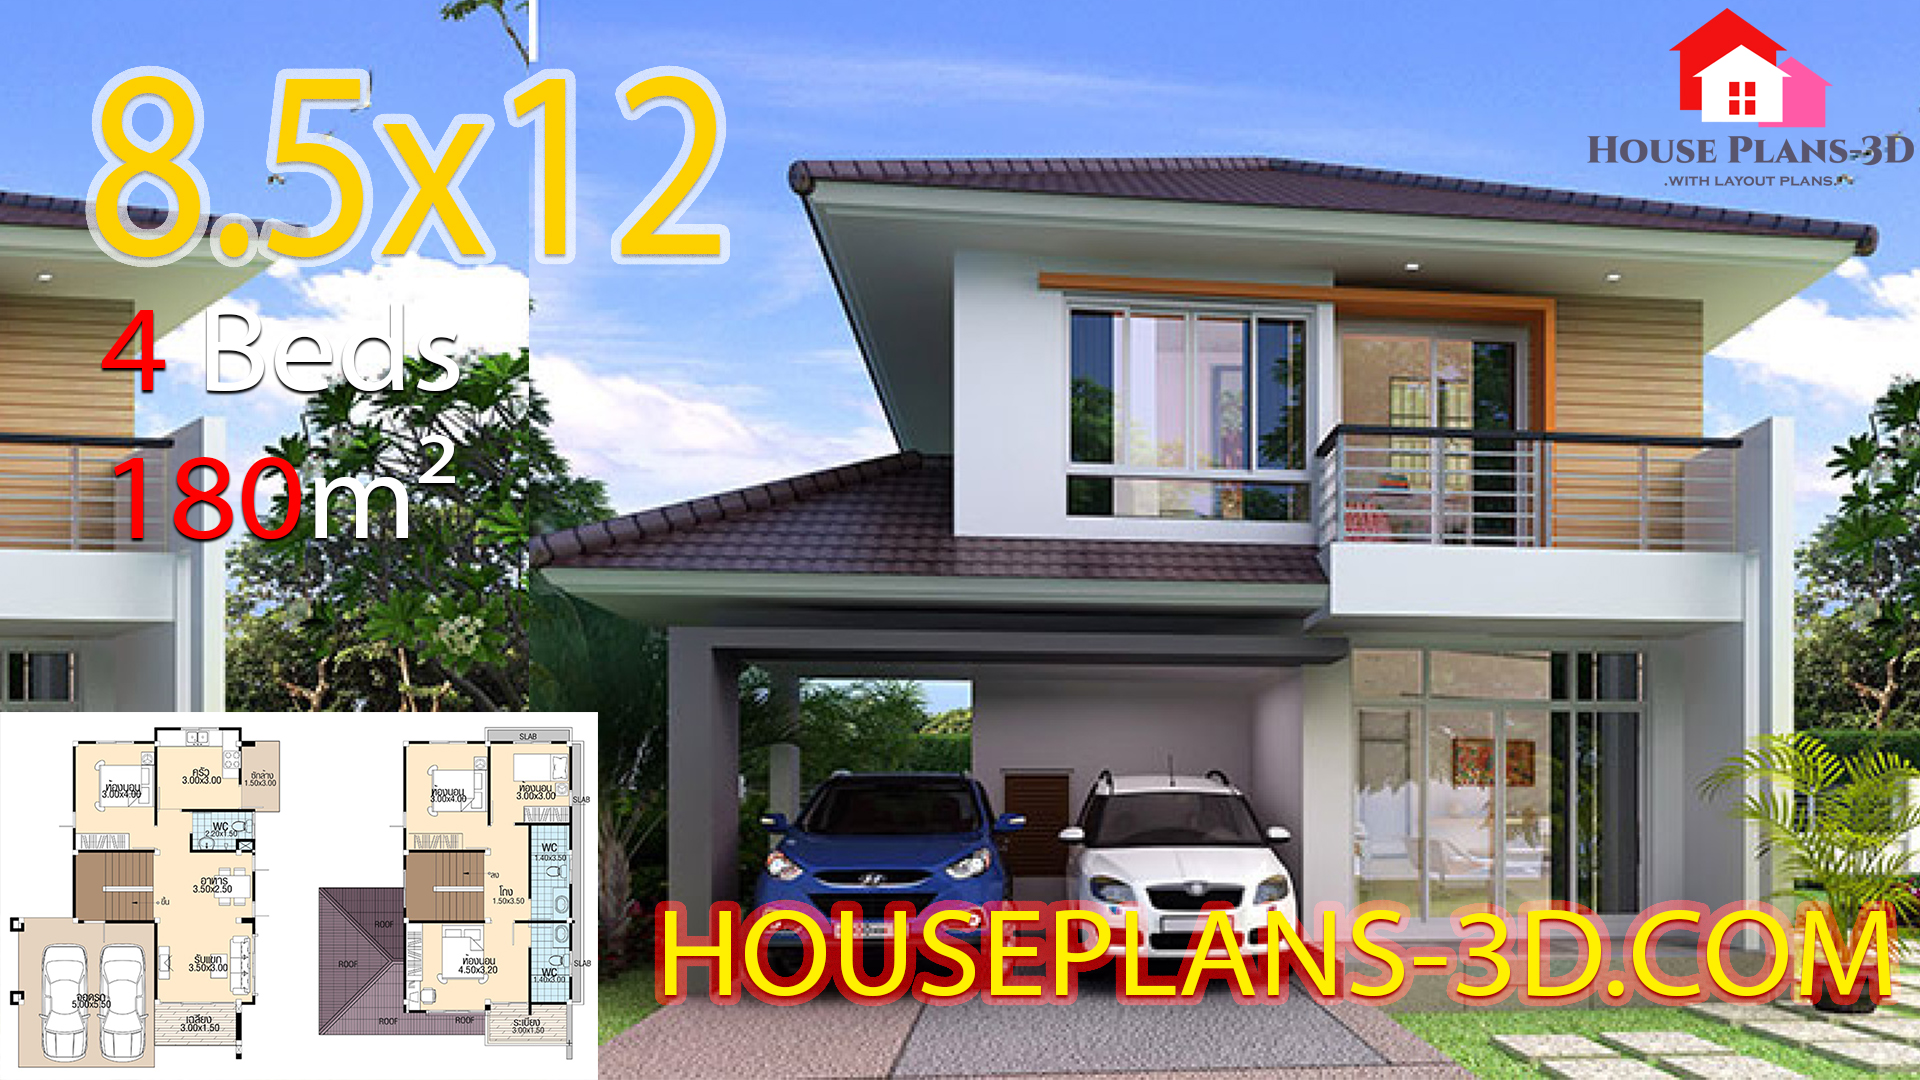 House plans 3d 8.5×12 with 4 bedrooms